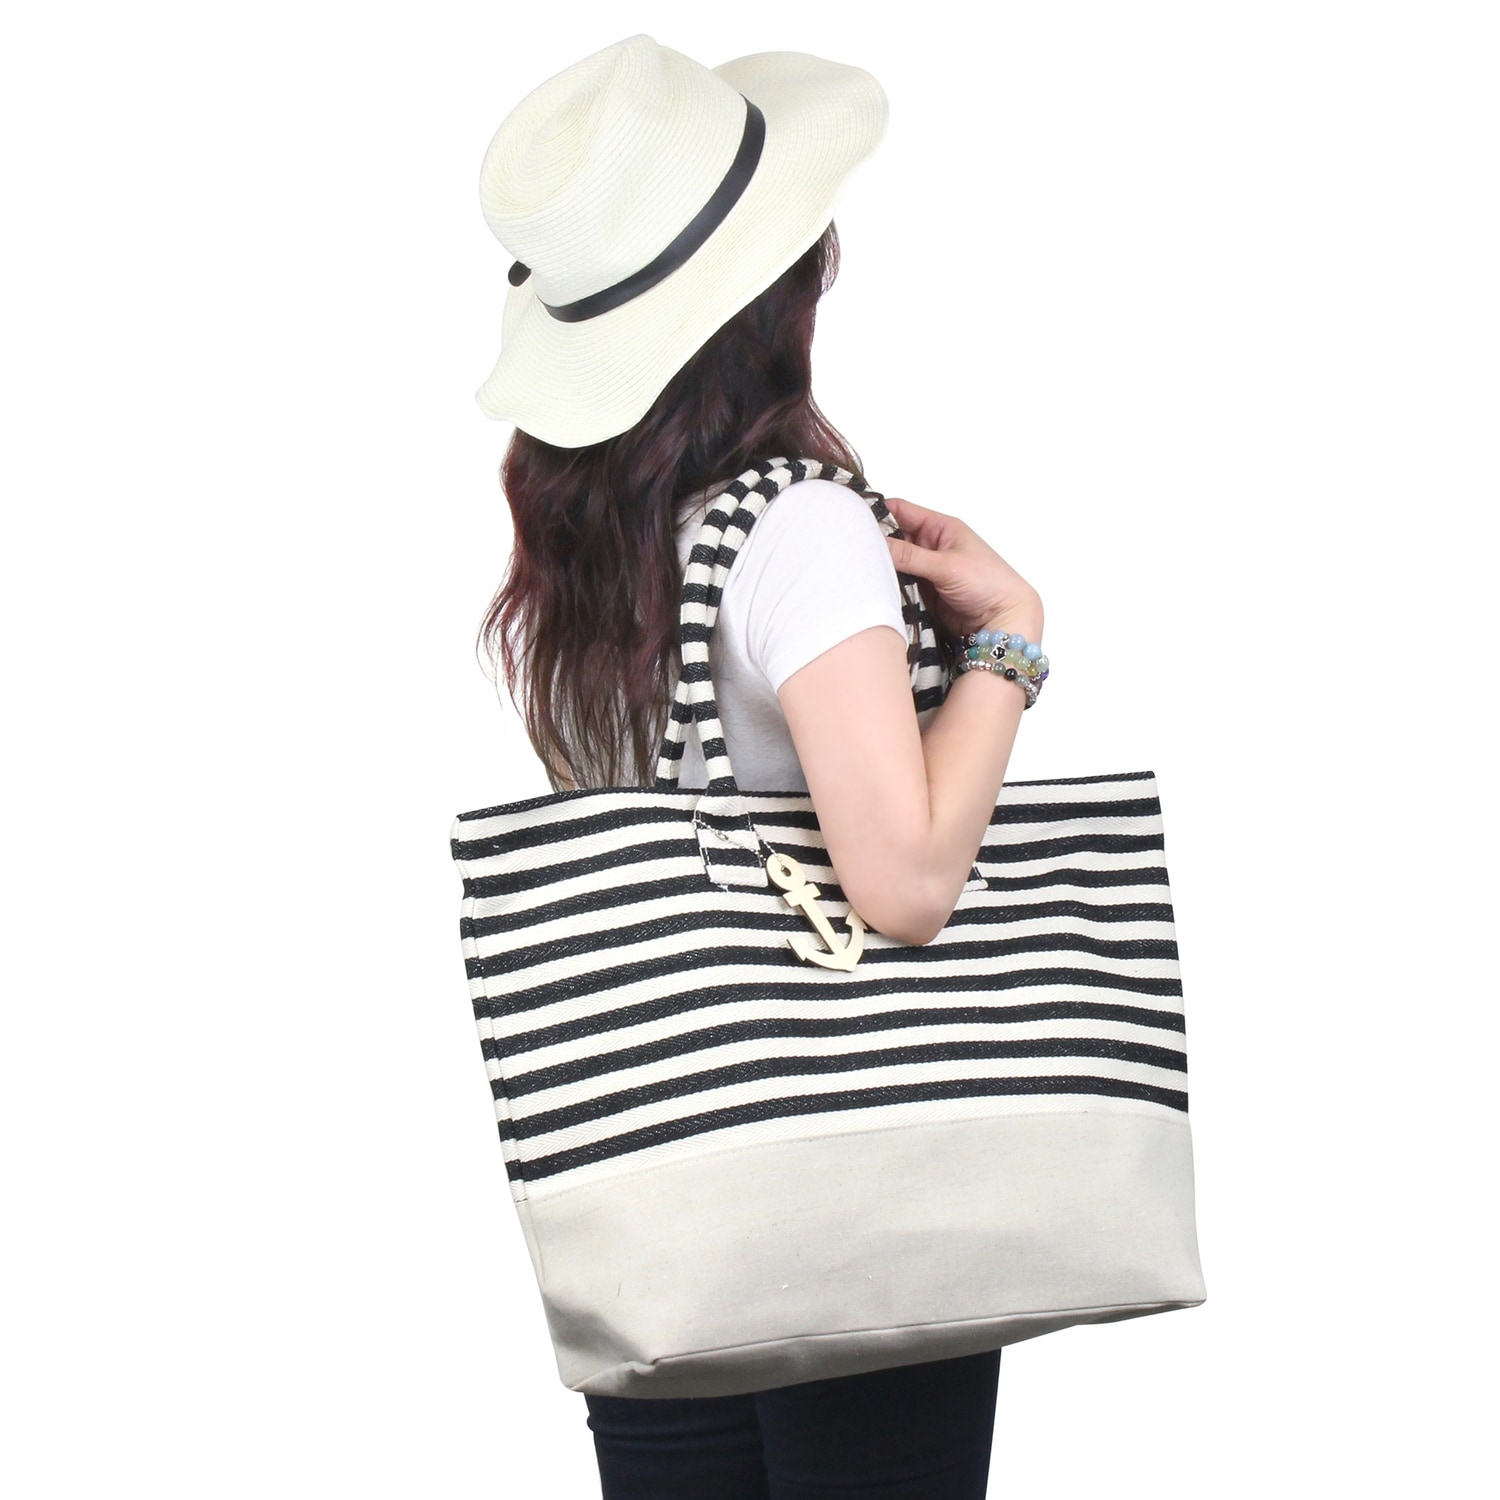 6131459b2a83 Shop Zodaca Black  White Stripes Women Handbag Ladies Large Shoulder Tote  Purse Messenger Bag - Free Shipping On Orders Over  45 - Overstock.com -  16697606